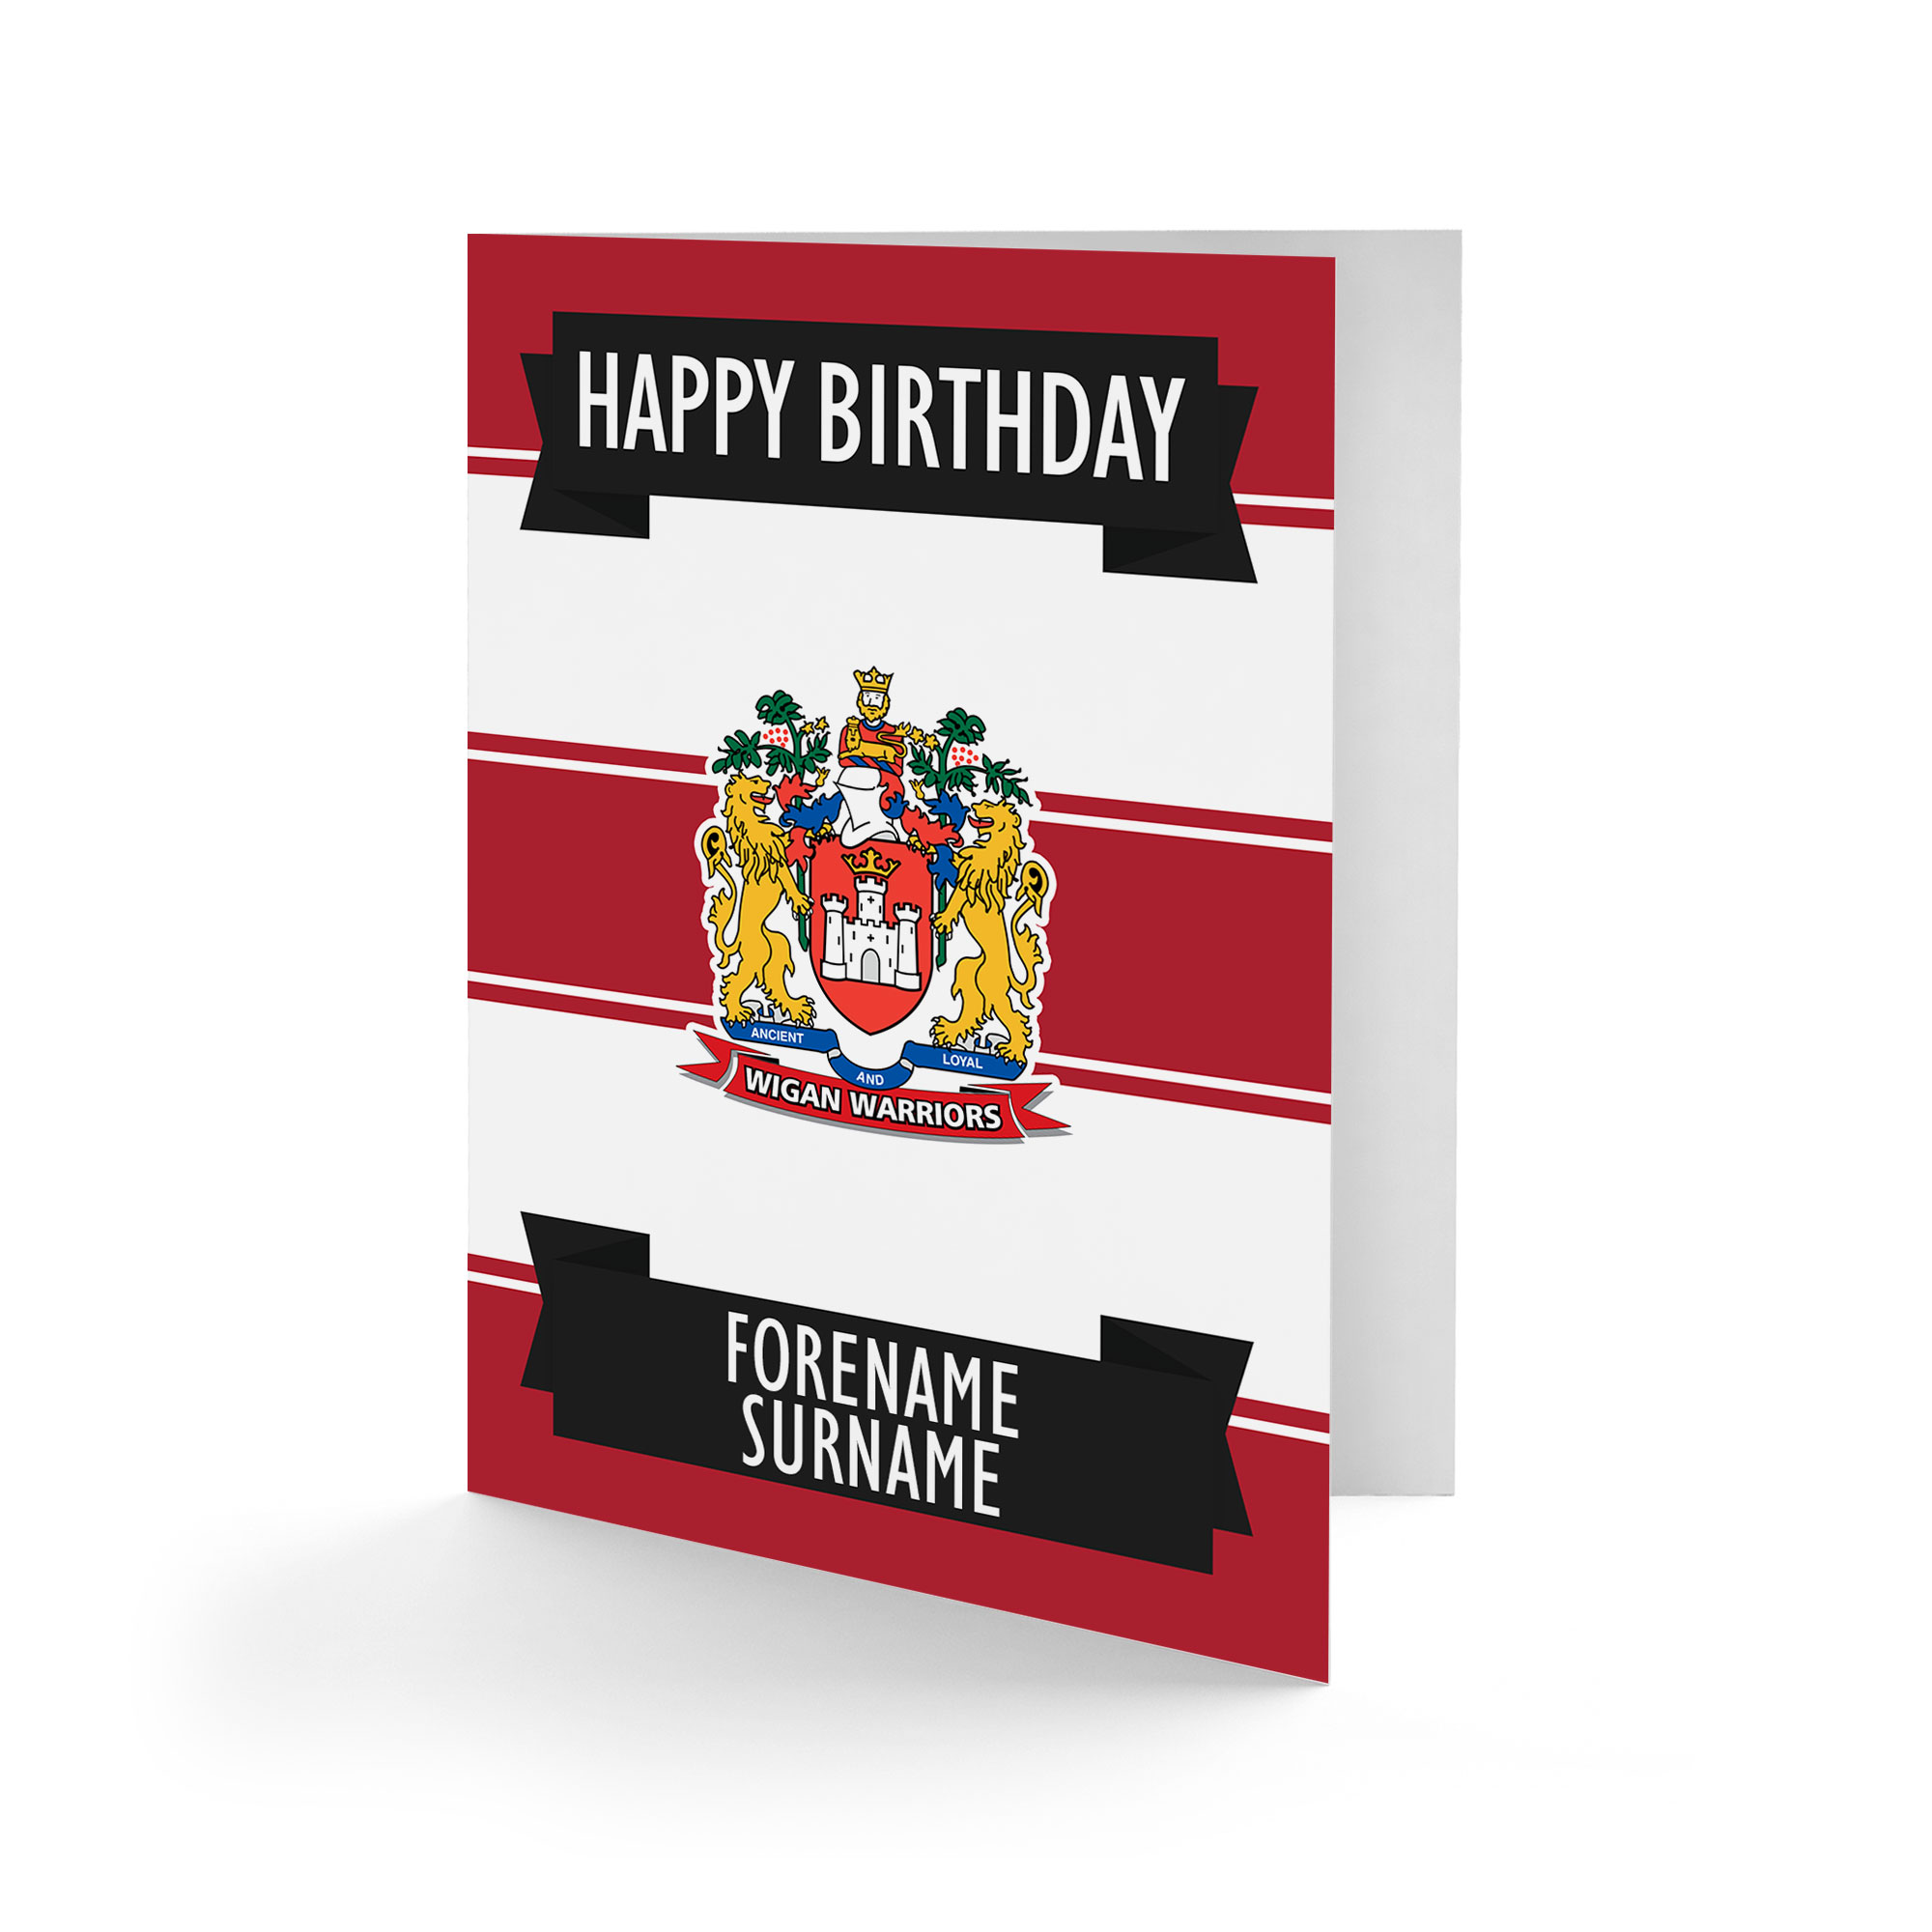 Wigan Warriors Crest Birthday Card